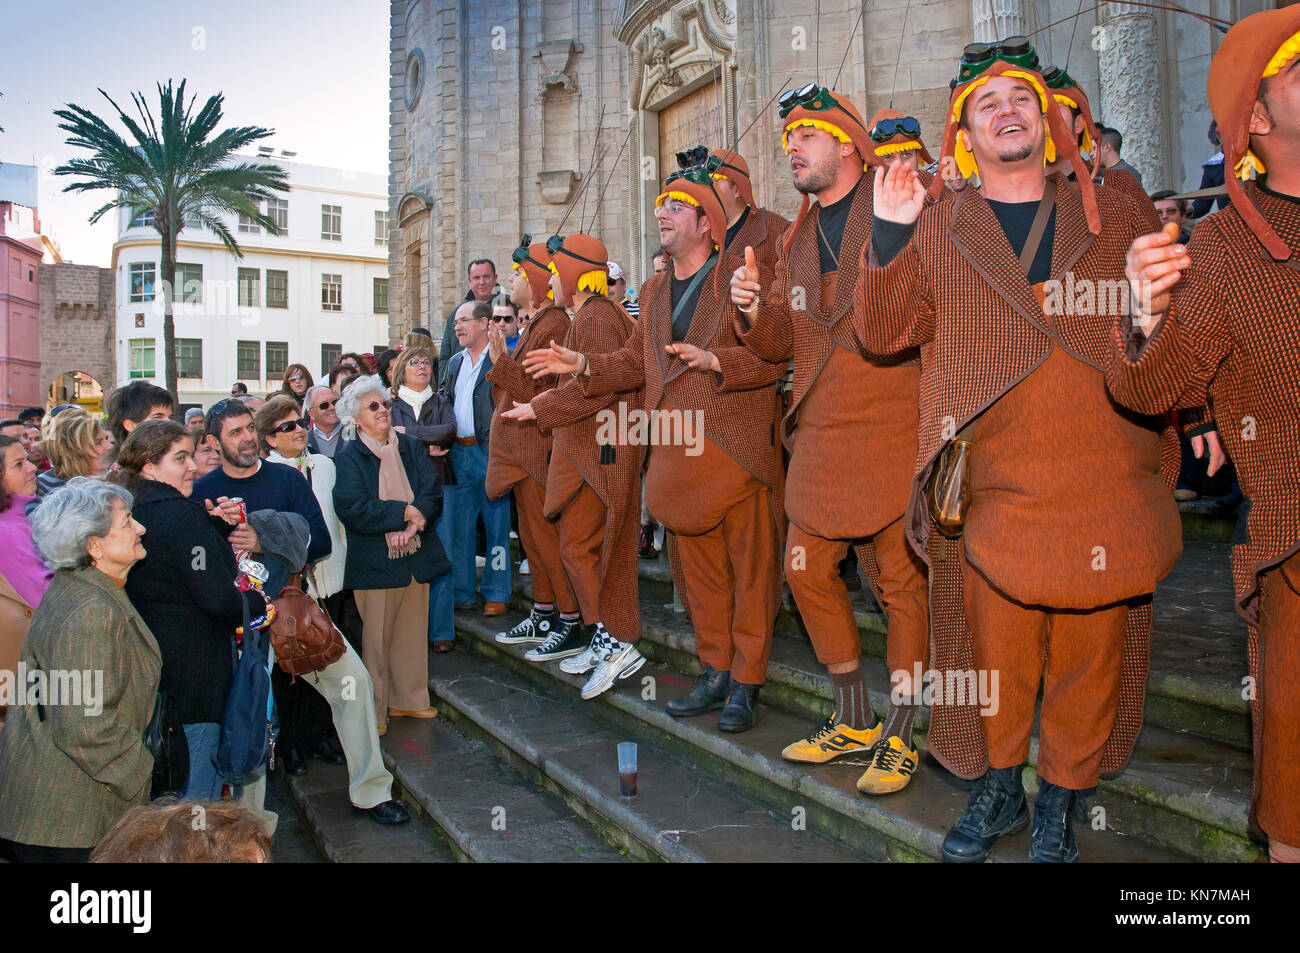 Carnival, Chirigota (musical group) singing on the stairs of the Cathedral, Cadiz, Region of Andalusia, Spain, Europe - Stock Image